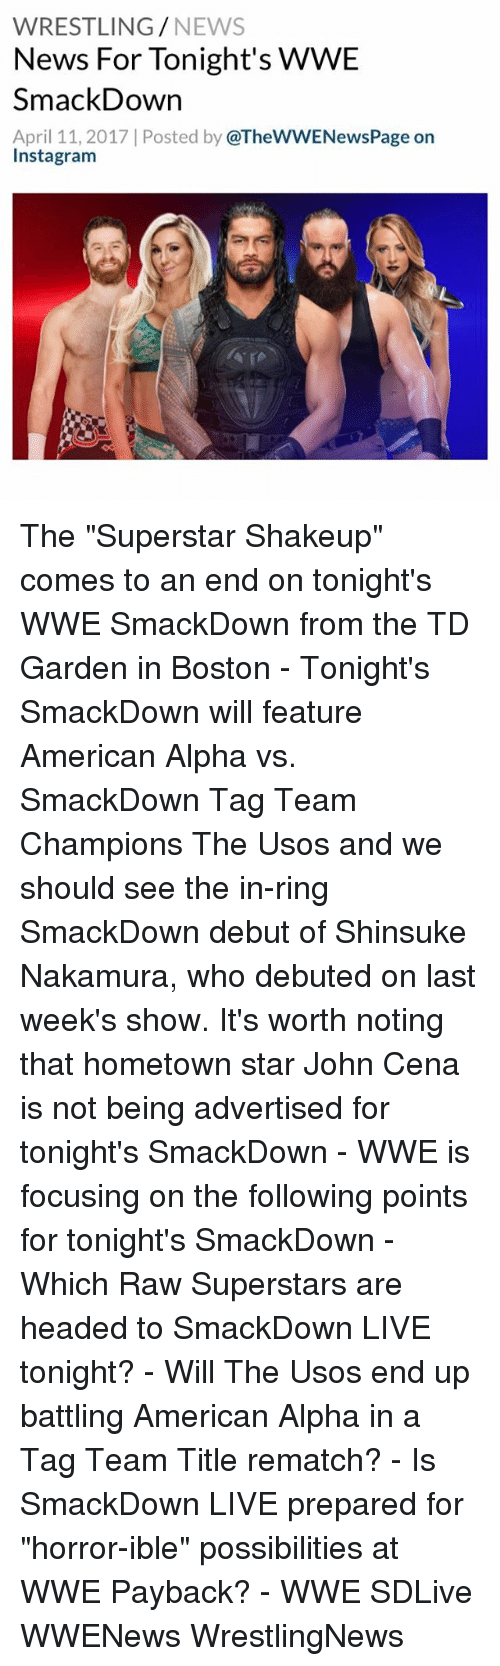 "td garden: WRESTLING  NEWS  News For Tonight's WWE  SmackDown  April 11, 2017 l Posted by  @TheWWENewsPage on  Insta gram The ""Superstar Shakeup"" comes to an end on tonight's WWE SmackDown from the TD Garden in Boston - Tonight's SmackDown will feature American Alpha vs. SmackDown Tag Team Champions The Usos and we should see the in-ring SmackDown debut of Shinsuke Nakamura, who debuted on last week's show. It's worth noting that hometown star John Cena is not being advertised for tonight's SmackDown - WWE is focusing on the following points for tonight's SmackDown - Which Raw Superstars are headed to SmackDown LIVE tonight? - Will The Usos end up battling American Alpha in a Tag Team Title rematch? - Is SmackDown LIVE prepared for ""horror-ible"" possibilities at WWE Payback? - WWE SDLive WWENews WrestlingNews"